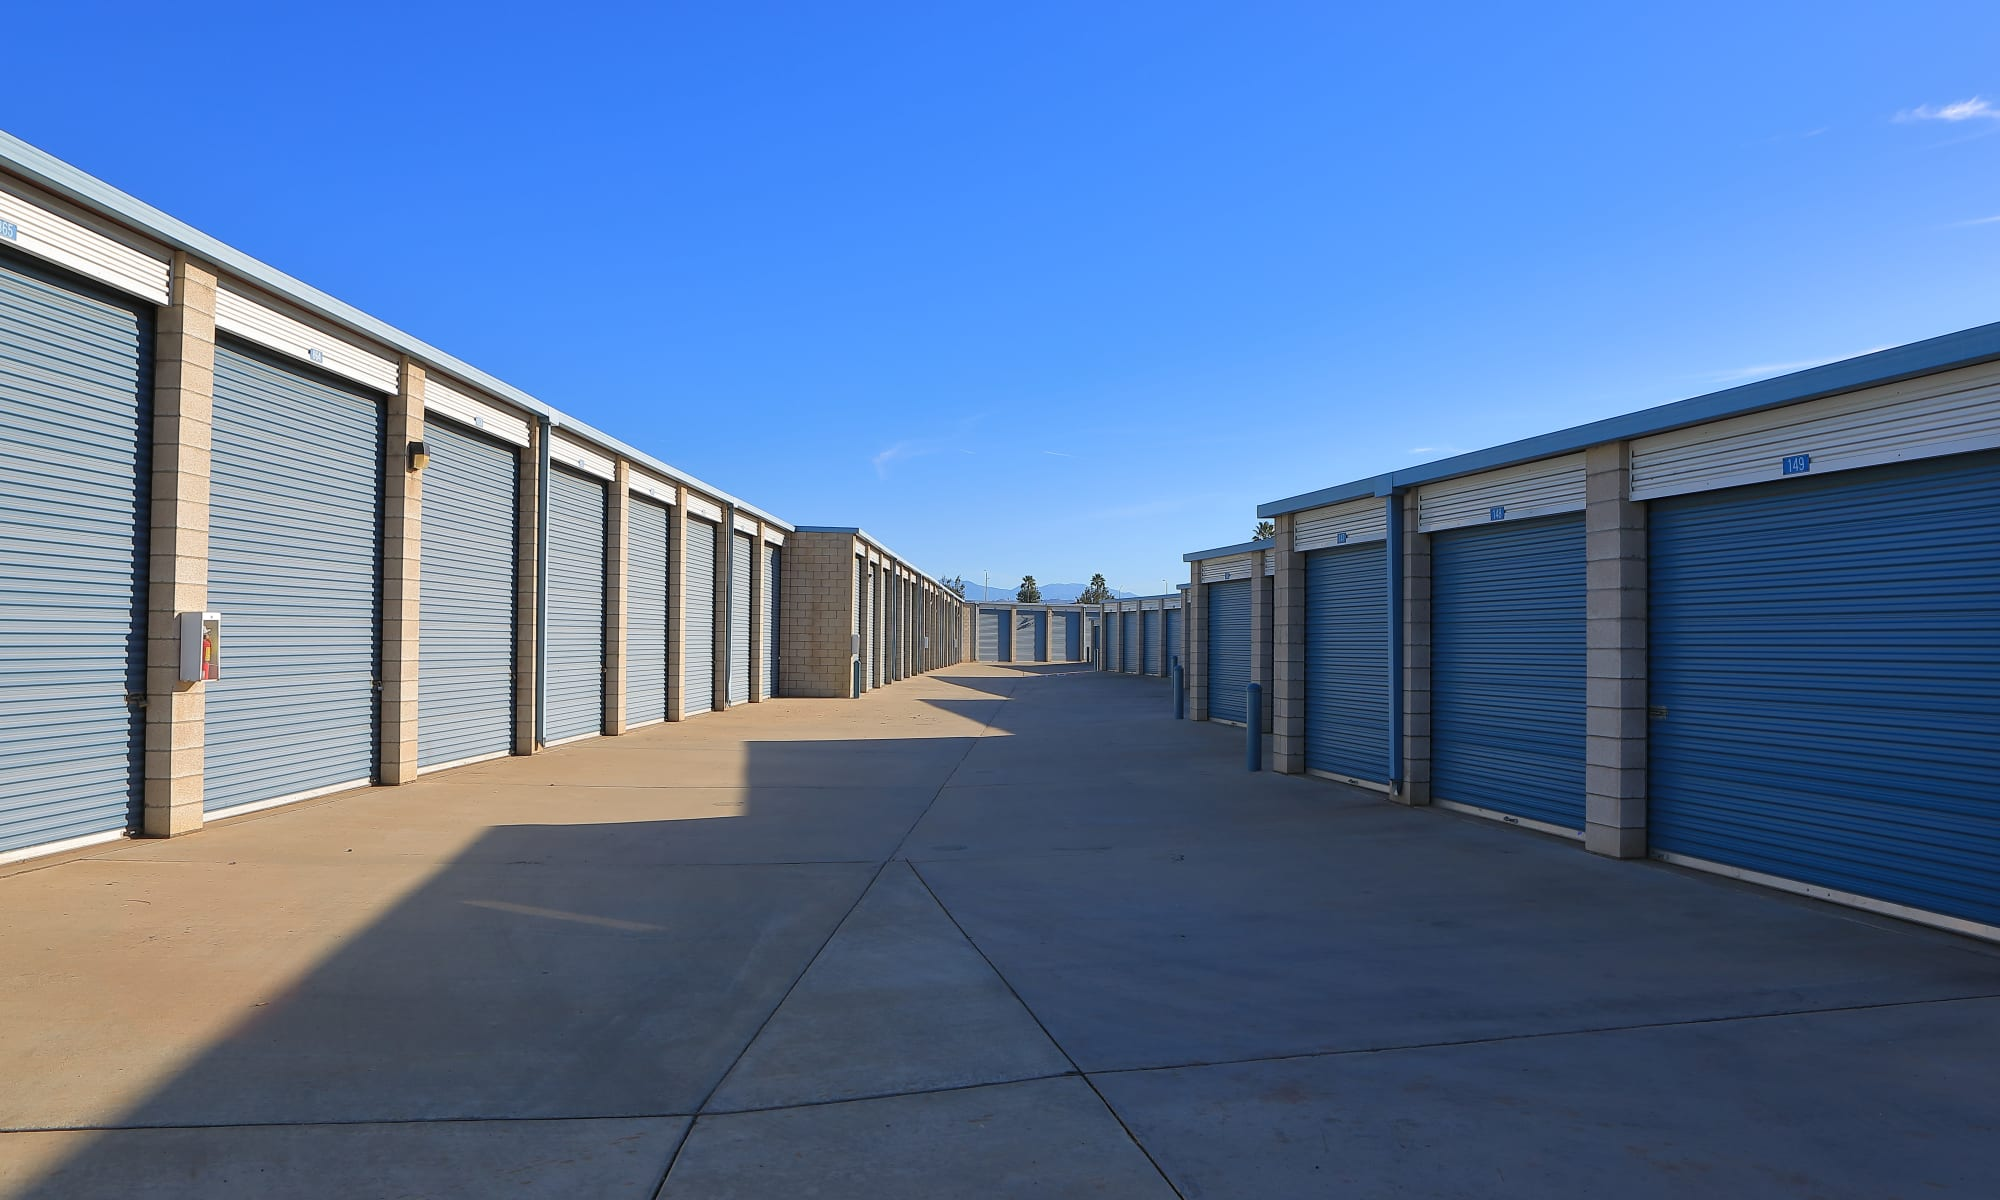 Contact us today at Storage Solutions in Riverside, California